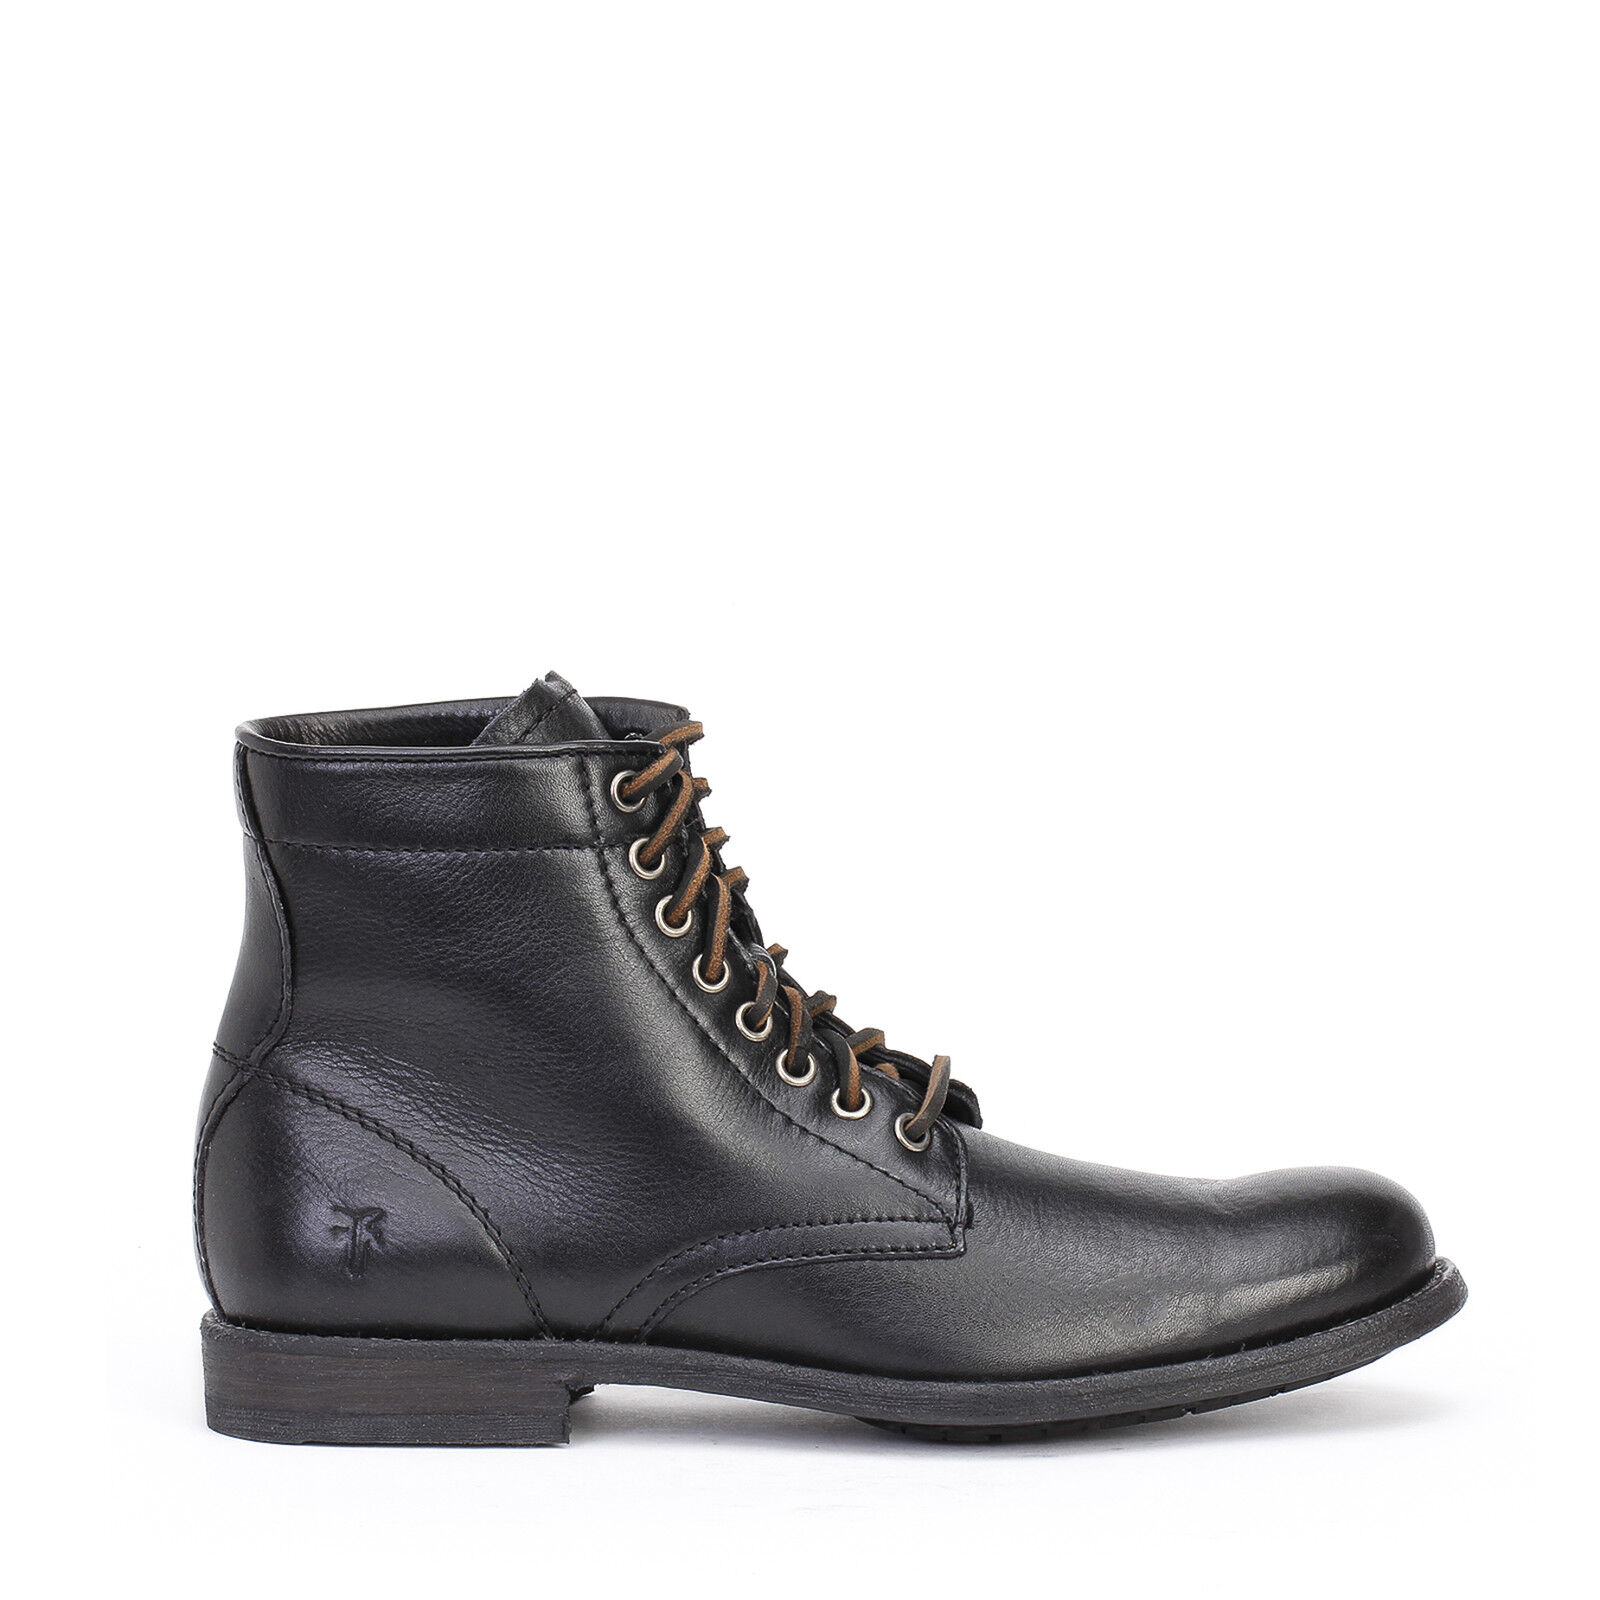 The Frye Company Mens Shoes